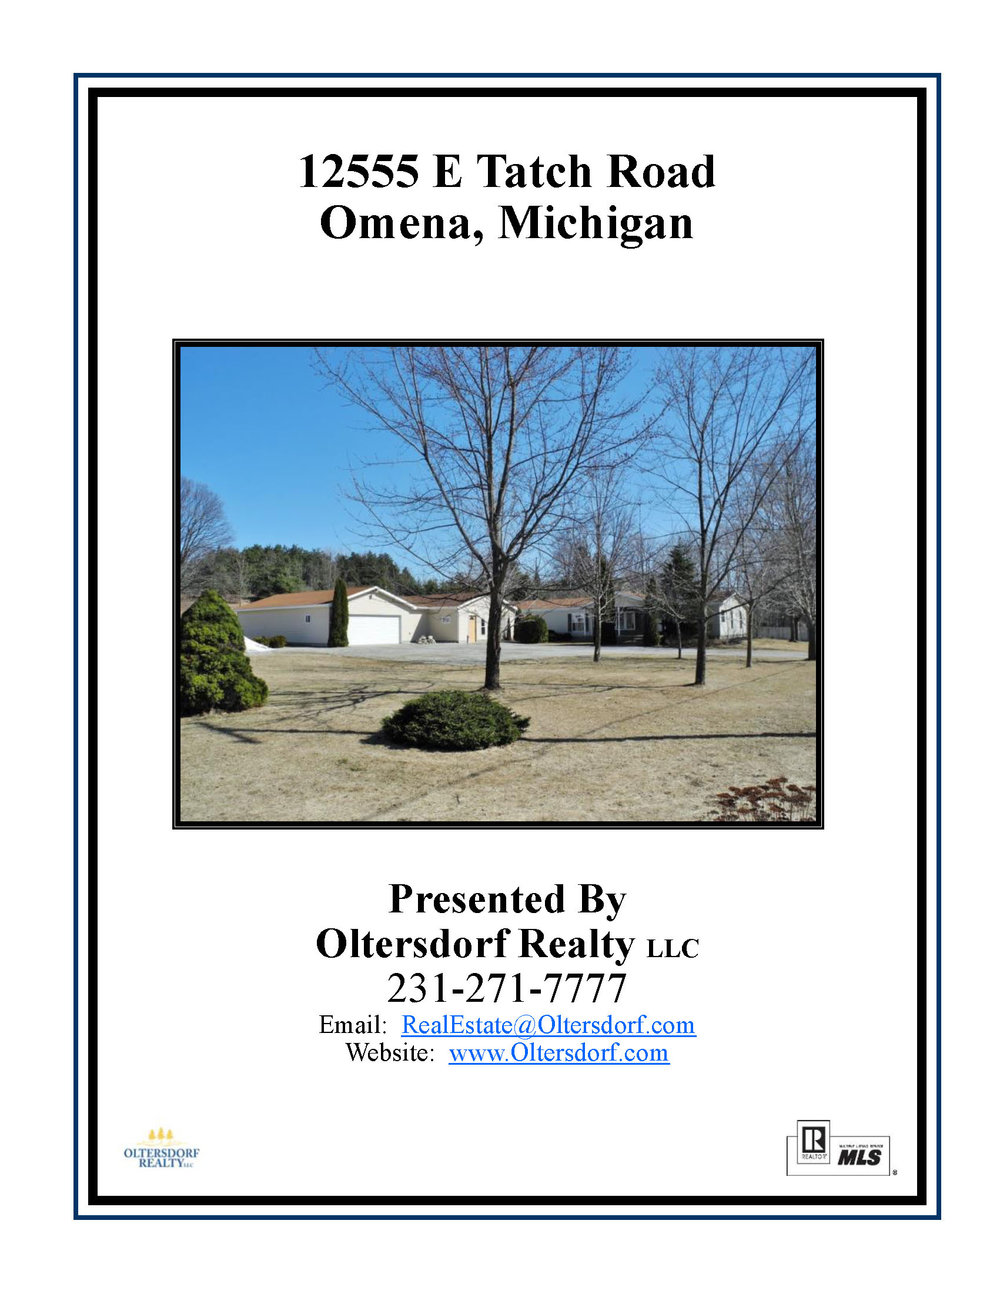 12555 E Tatch Road, Omena, MI – 4 Bedroom Home + Large Garage & Workshop For Sale by Oltersdorf Realty LLC (4).jpg